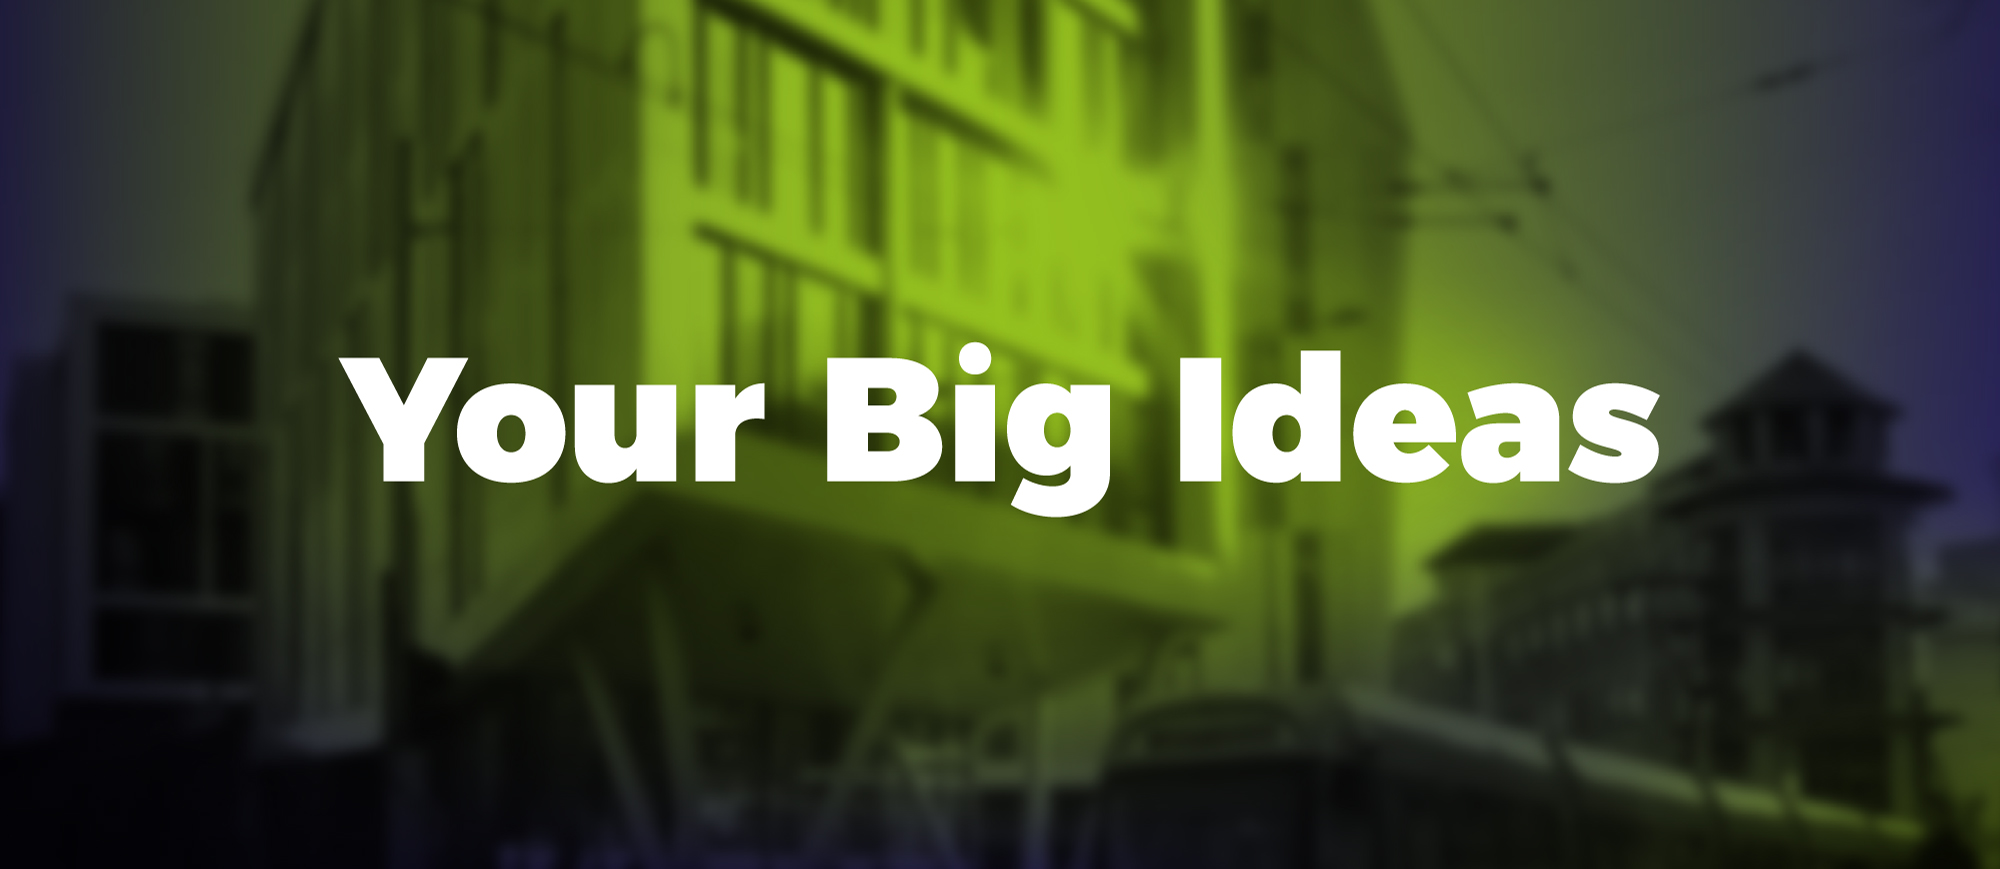 Your Big Ideas